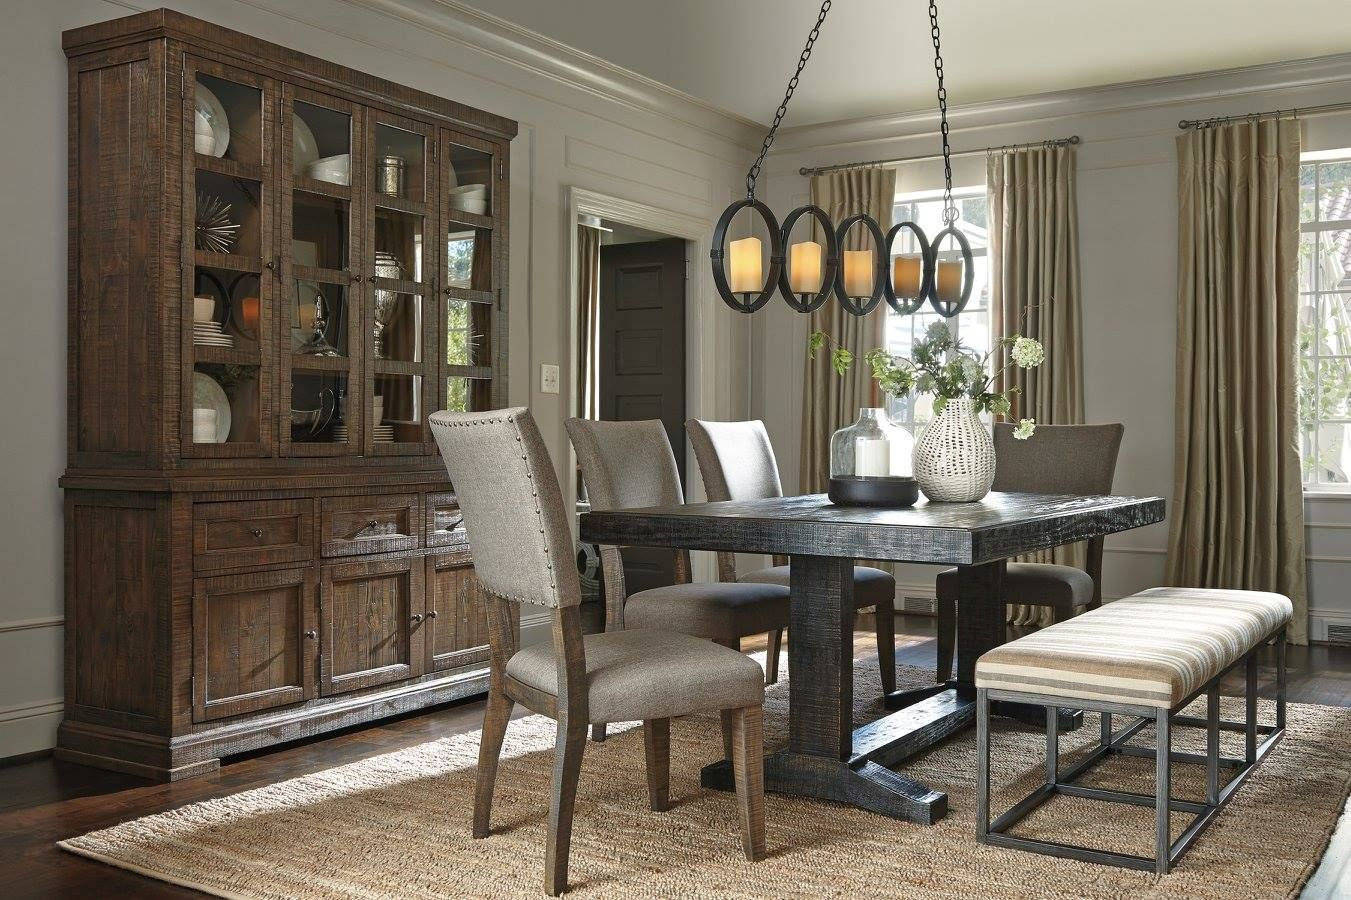 rustic brown strumfeld dining room table like the rustic look of table not sure about getting a dark table now that the floors are darker too